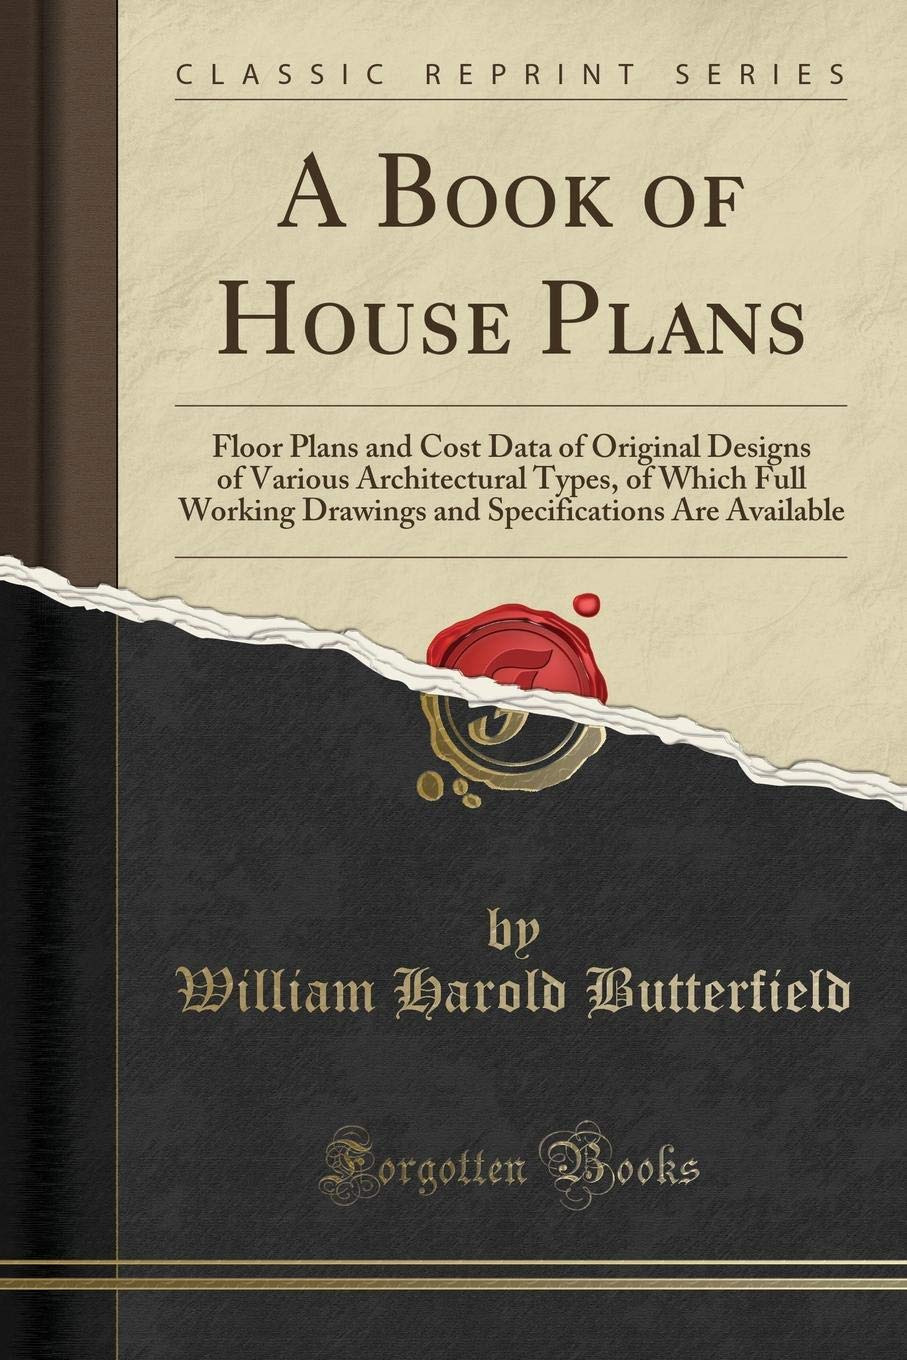 Books Of House Plans Awesome A Book Of House Plans Floor Plans and Cost Data Of original